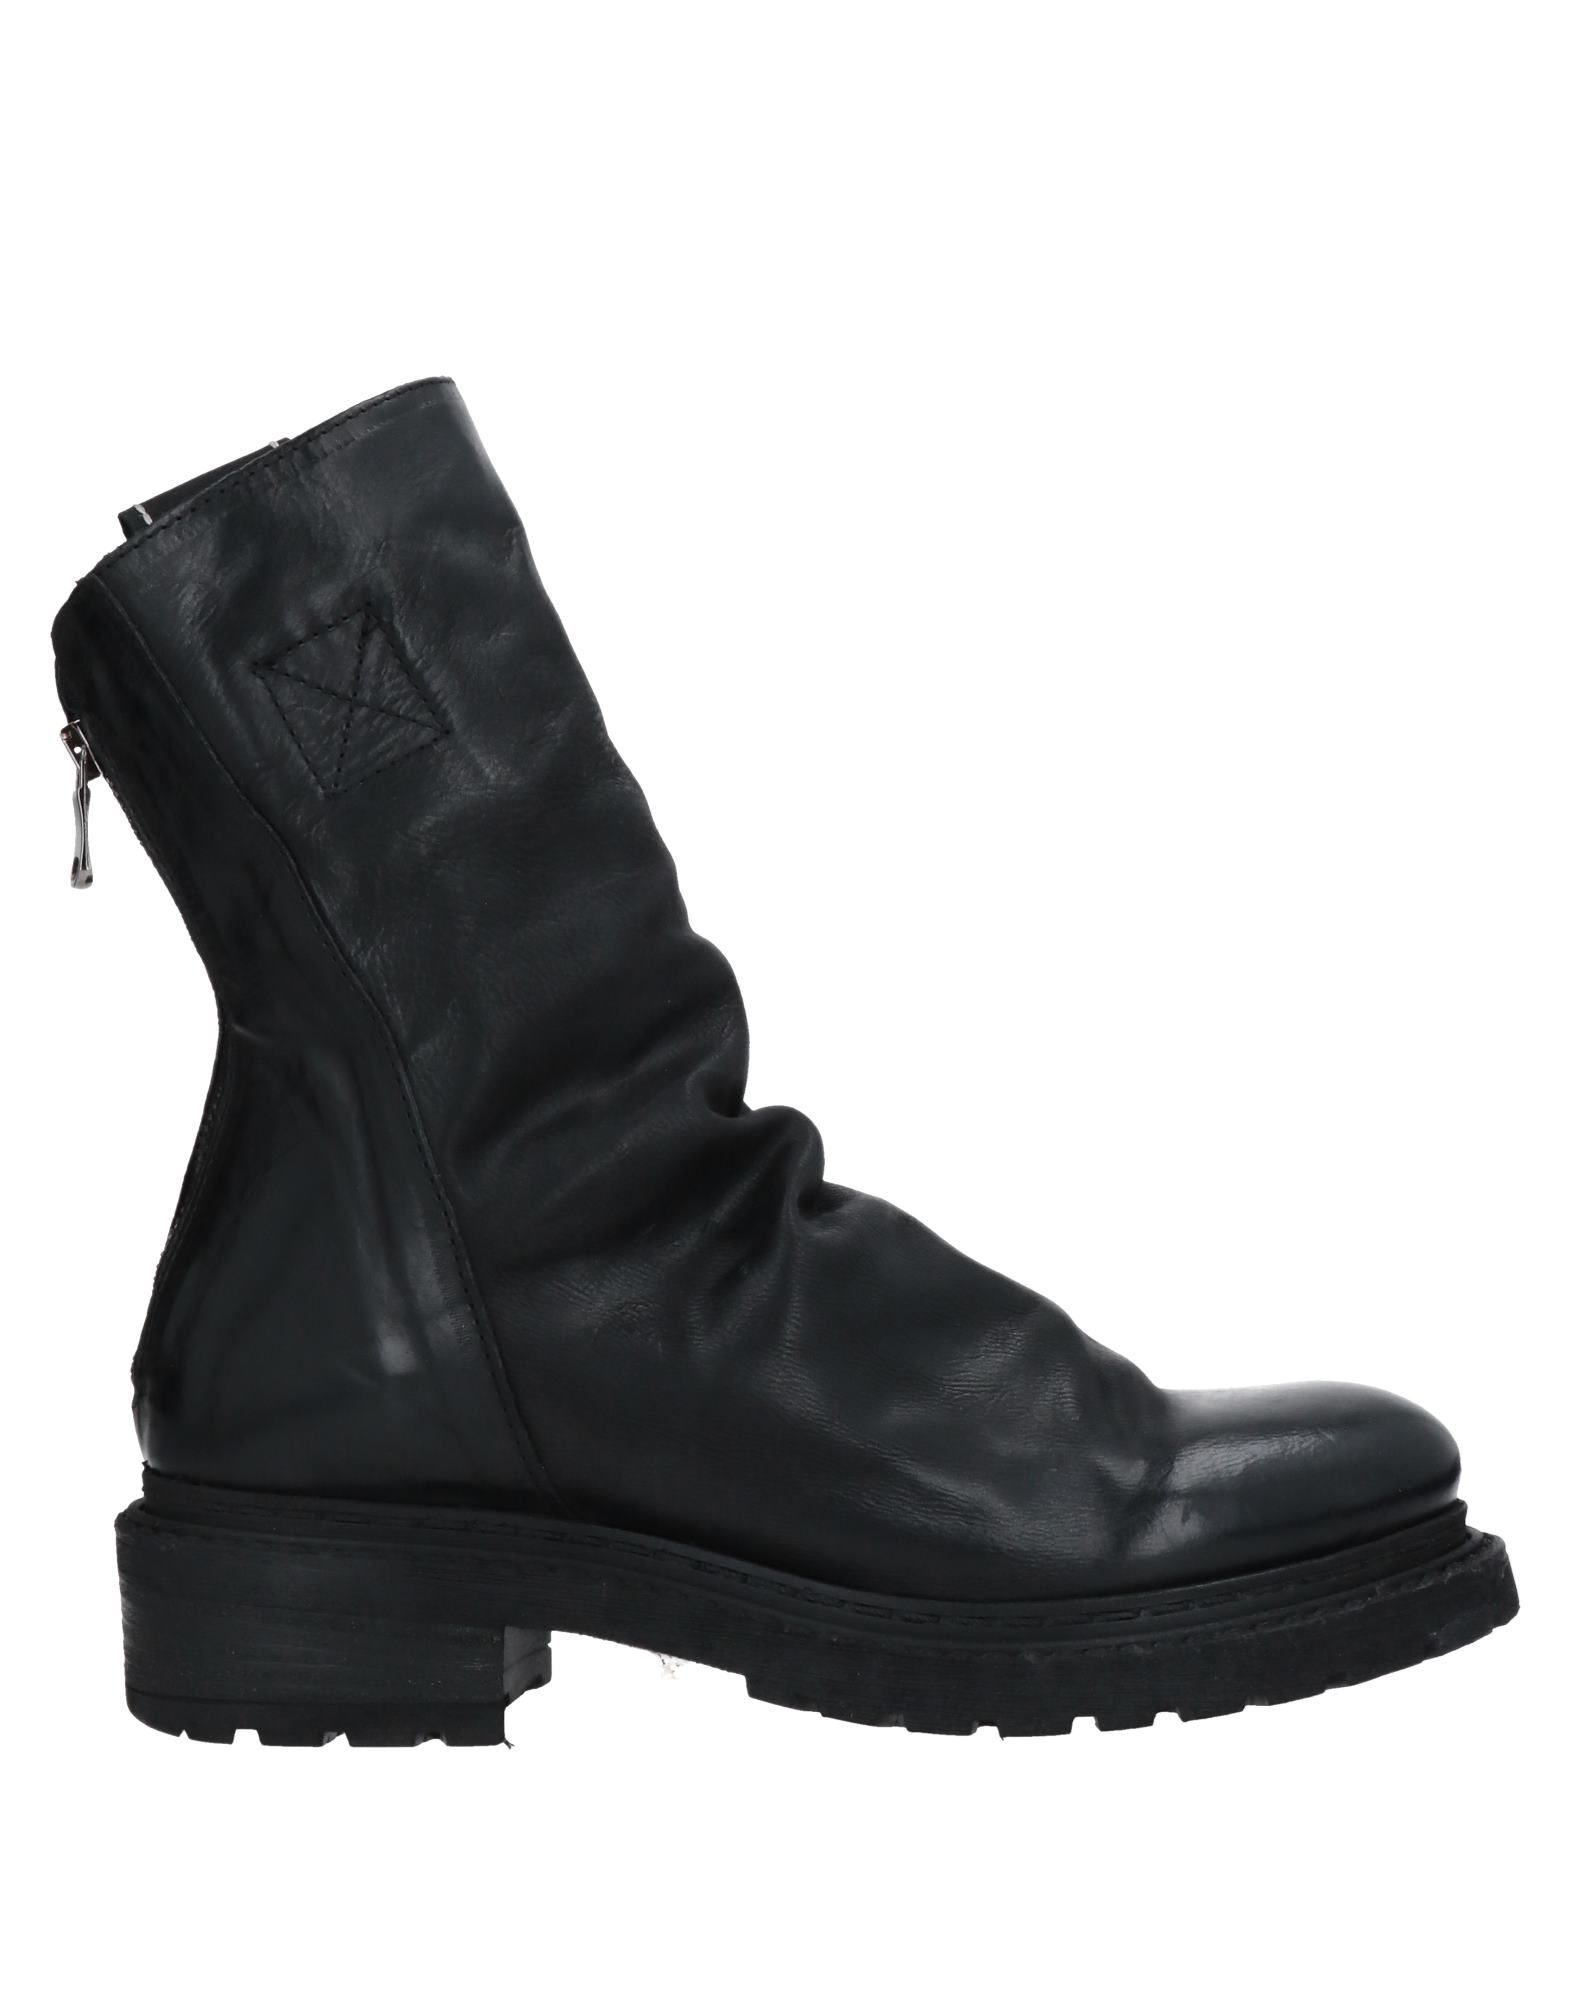 METISSE Ankle boots - Item 17048641